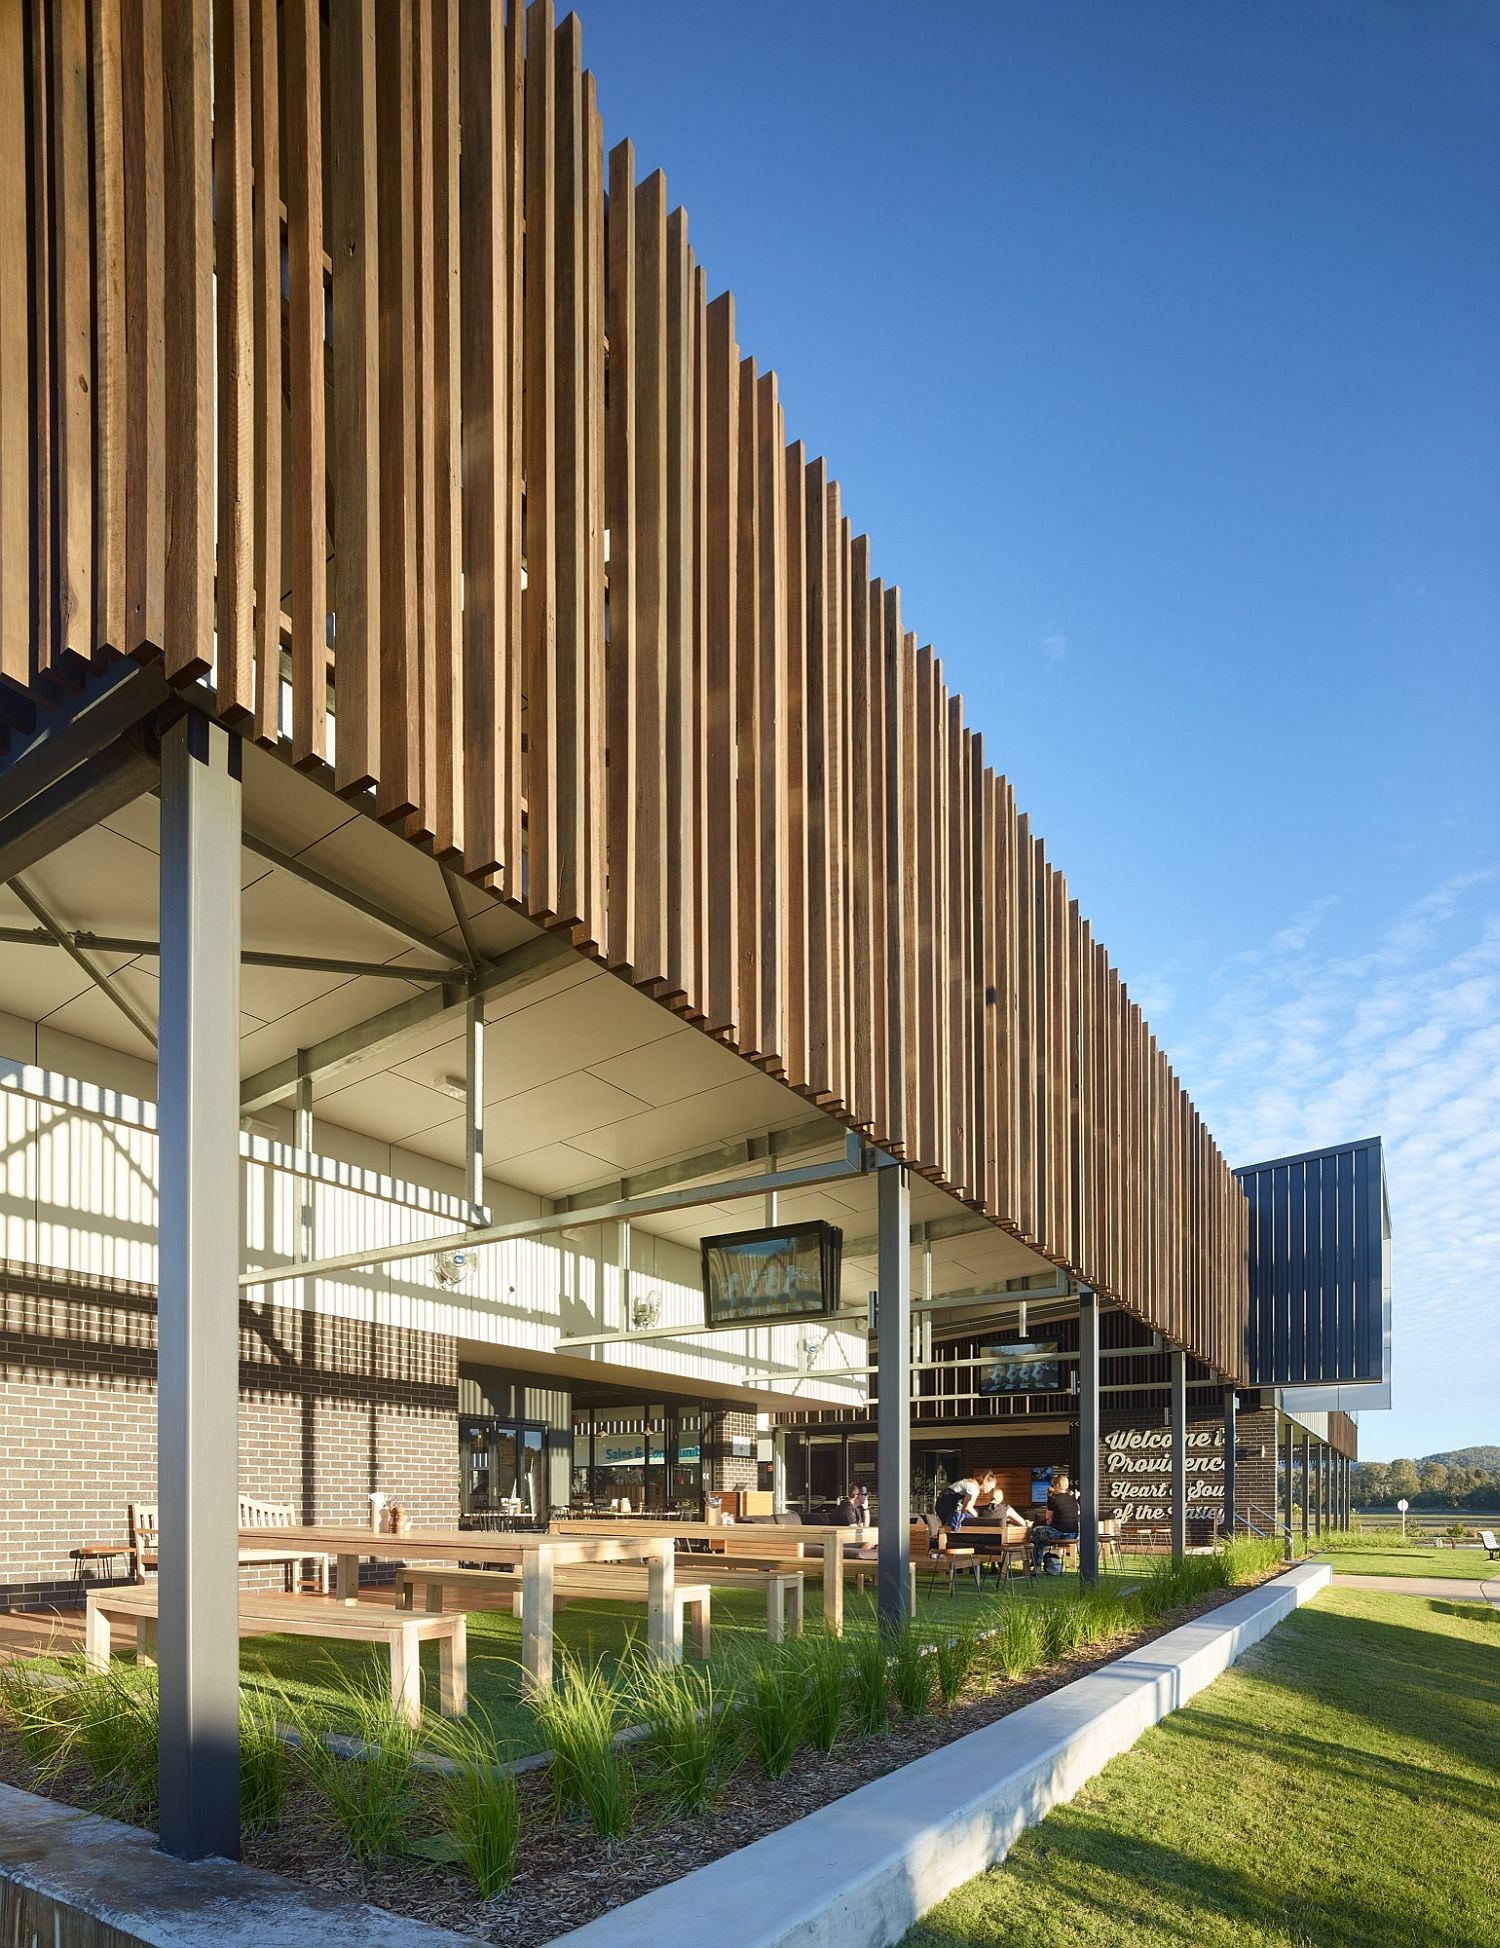 Wooden slats give the facade of the building a unique look